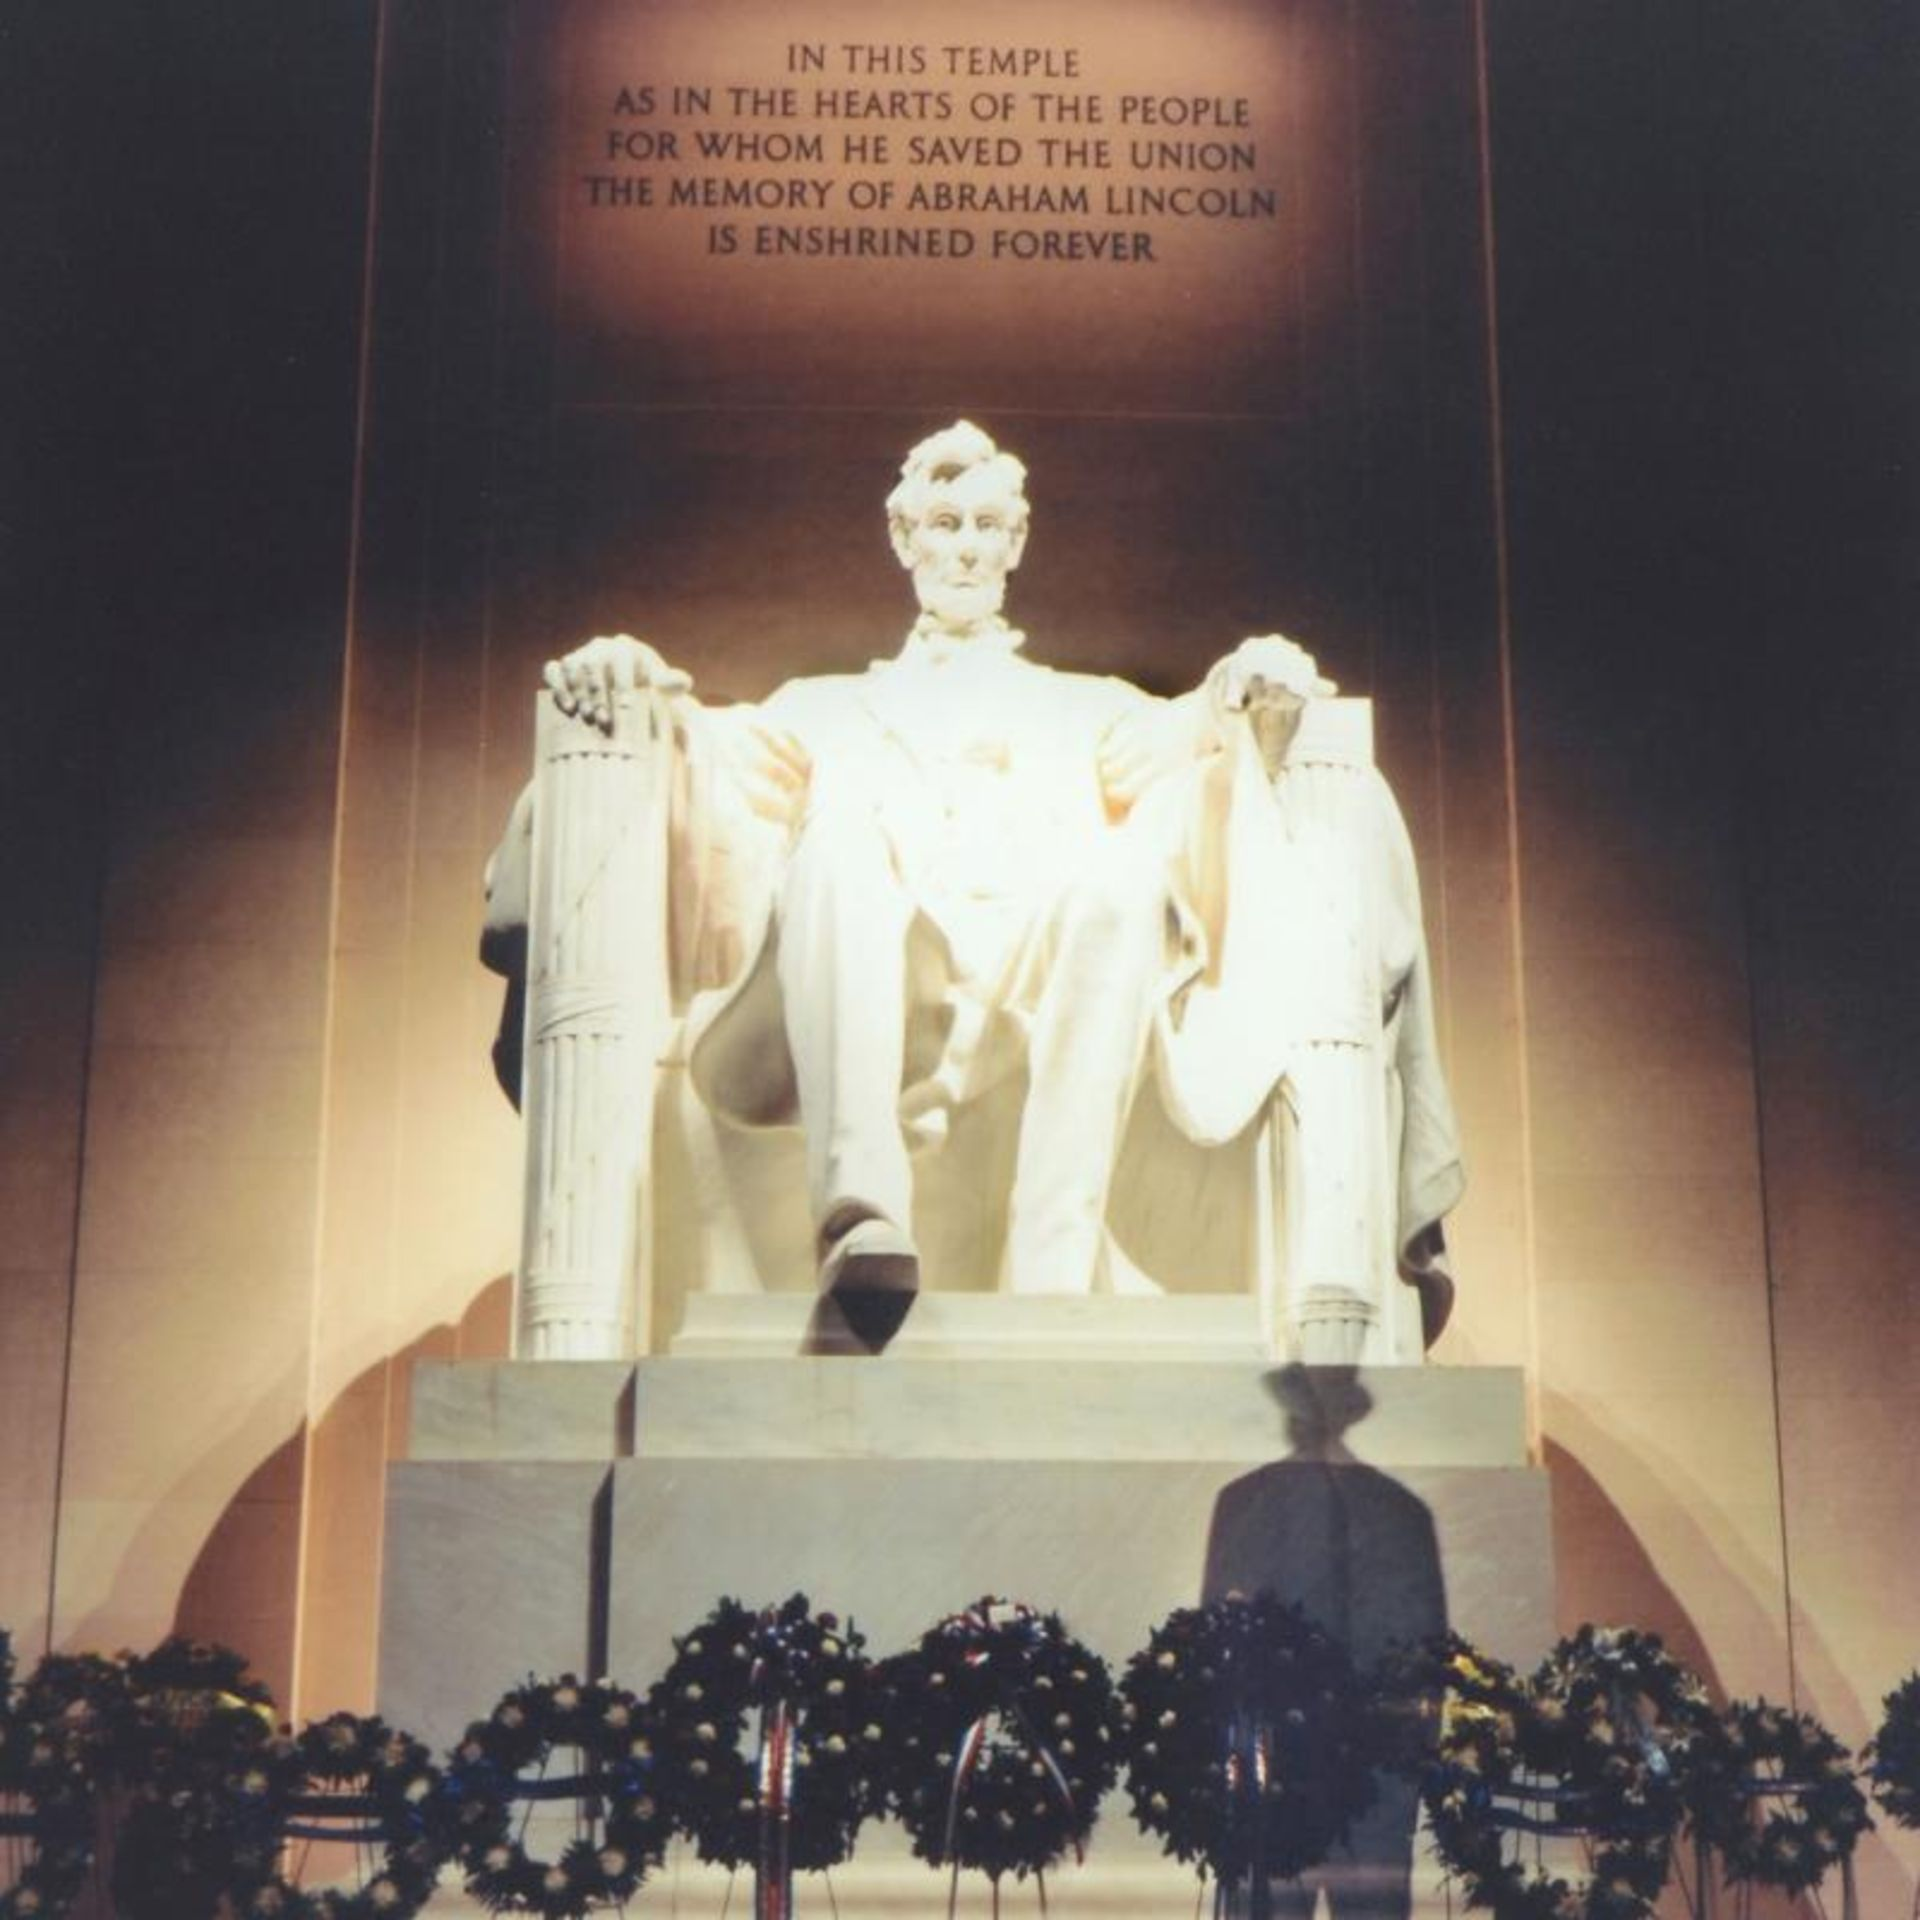 Young Mr. Lincoln by Sheer, Robert - Image 2 of 2